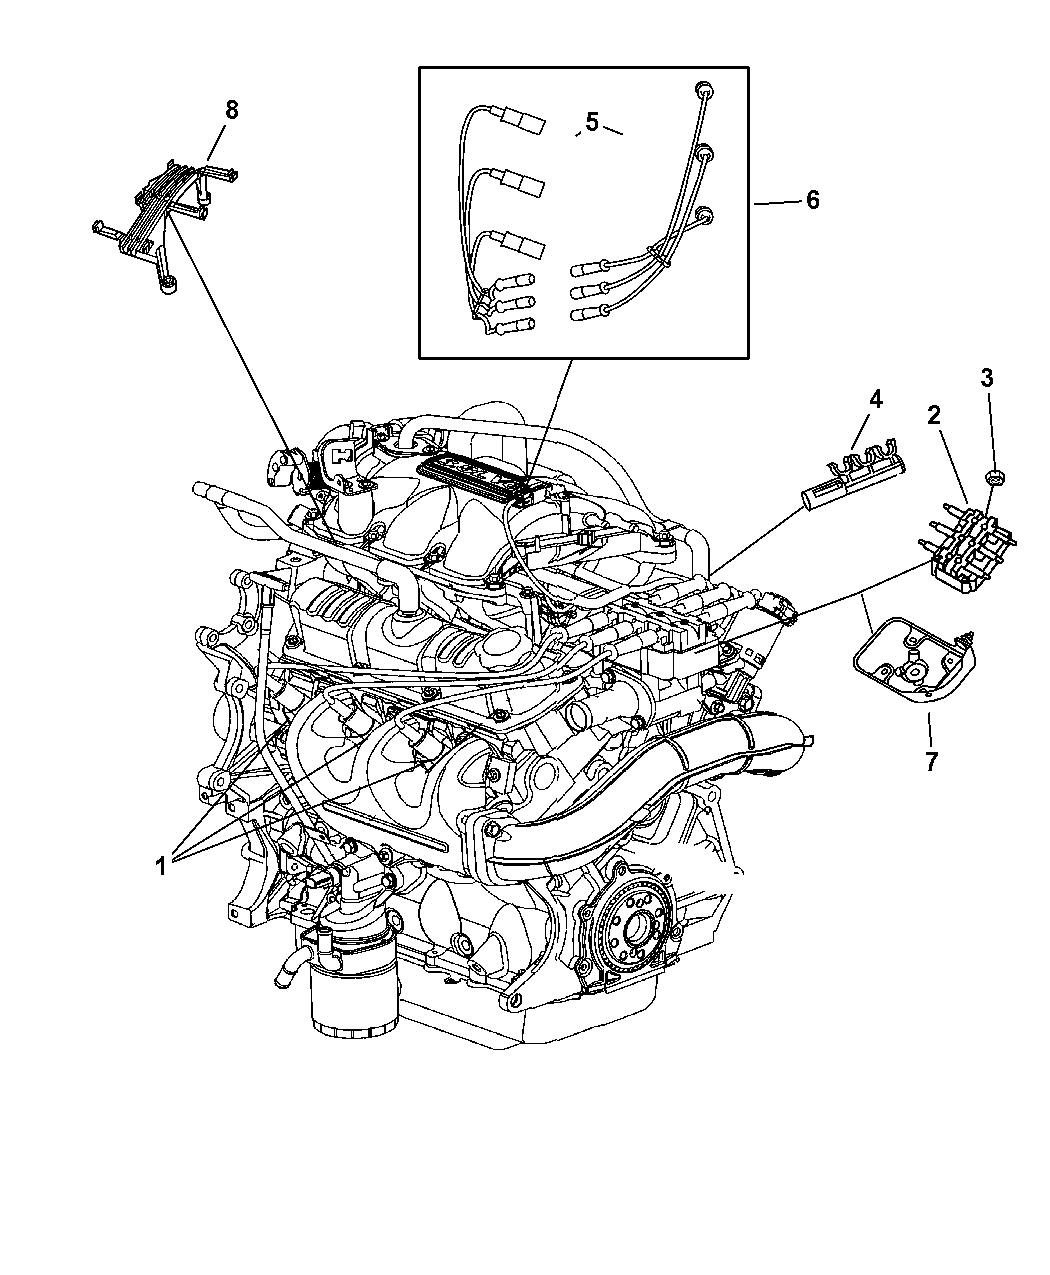 Wiring Diagram For 2008 Chrysler Pacifica Library Fuse Box 2006 Spark Plugs Ignition Wires And Coil